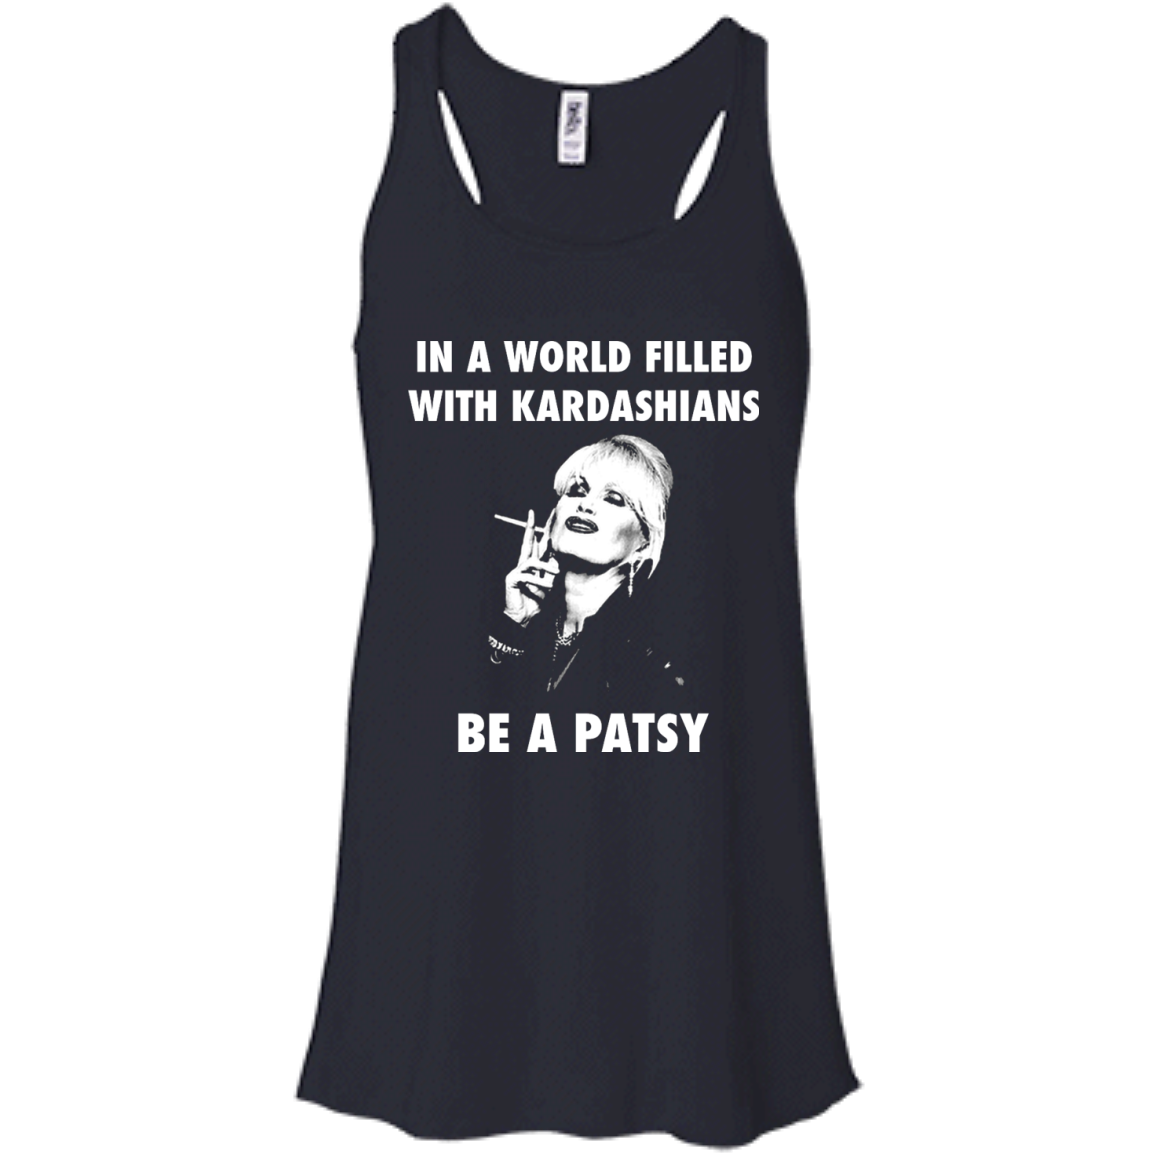 fb698589b Joanna Lumley: In A World Filled With Kardashians Be A Patsy shirt, tank